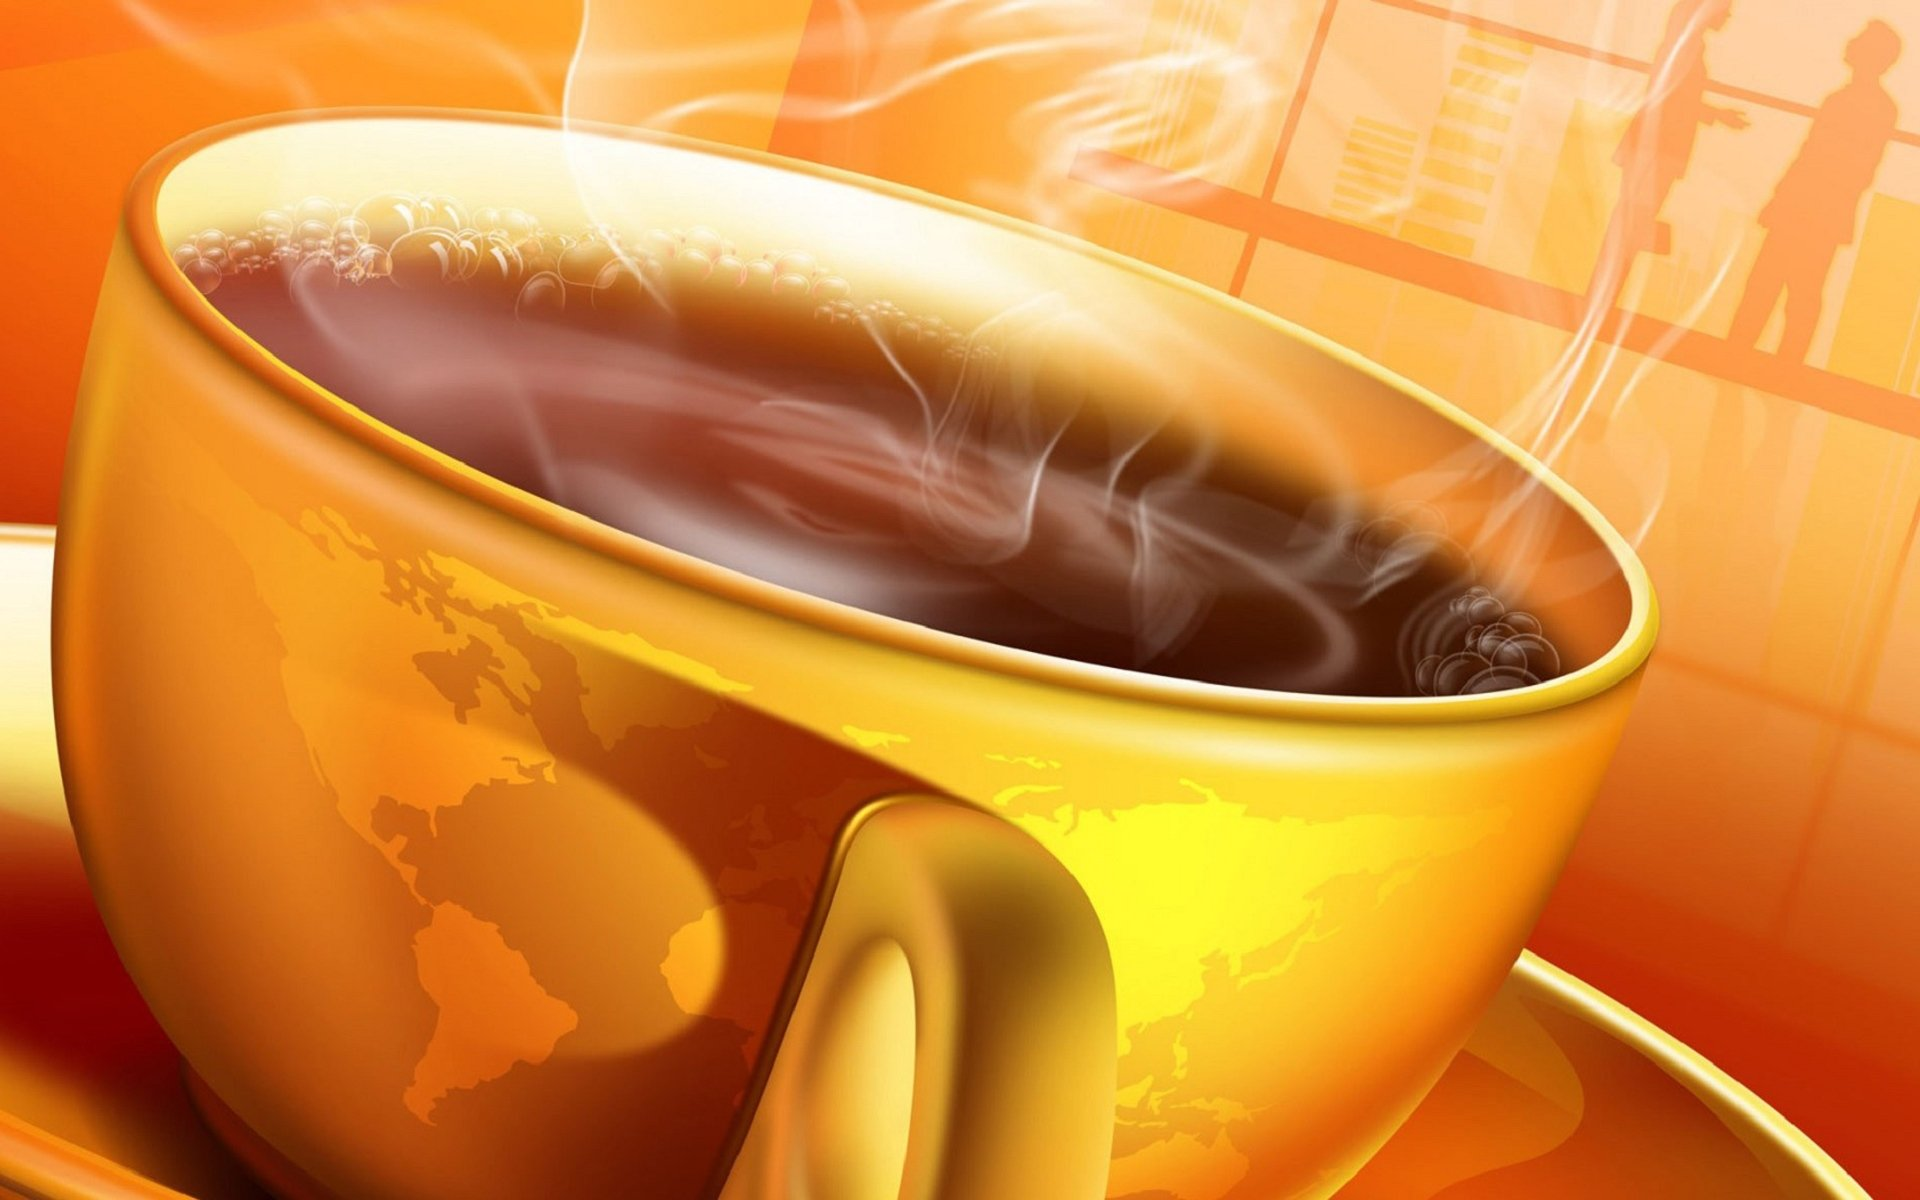 Warm Coffee Wallpapers | HD Wallpapers